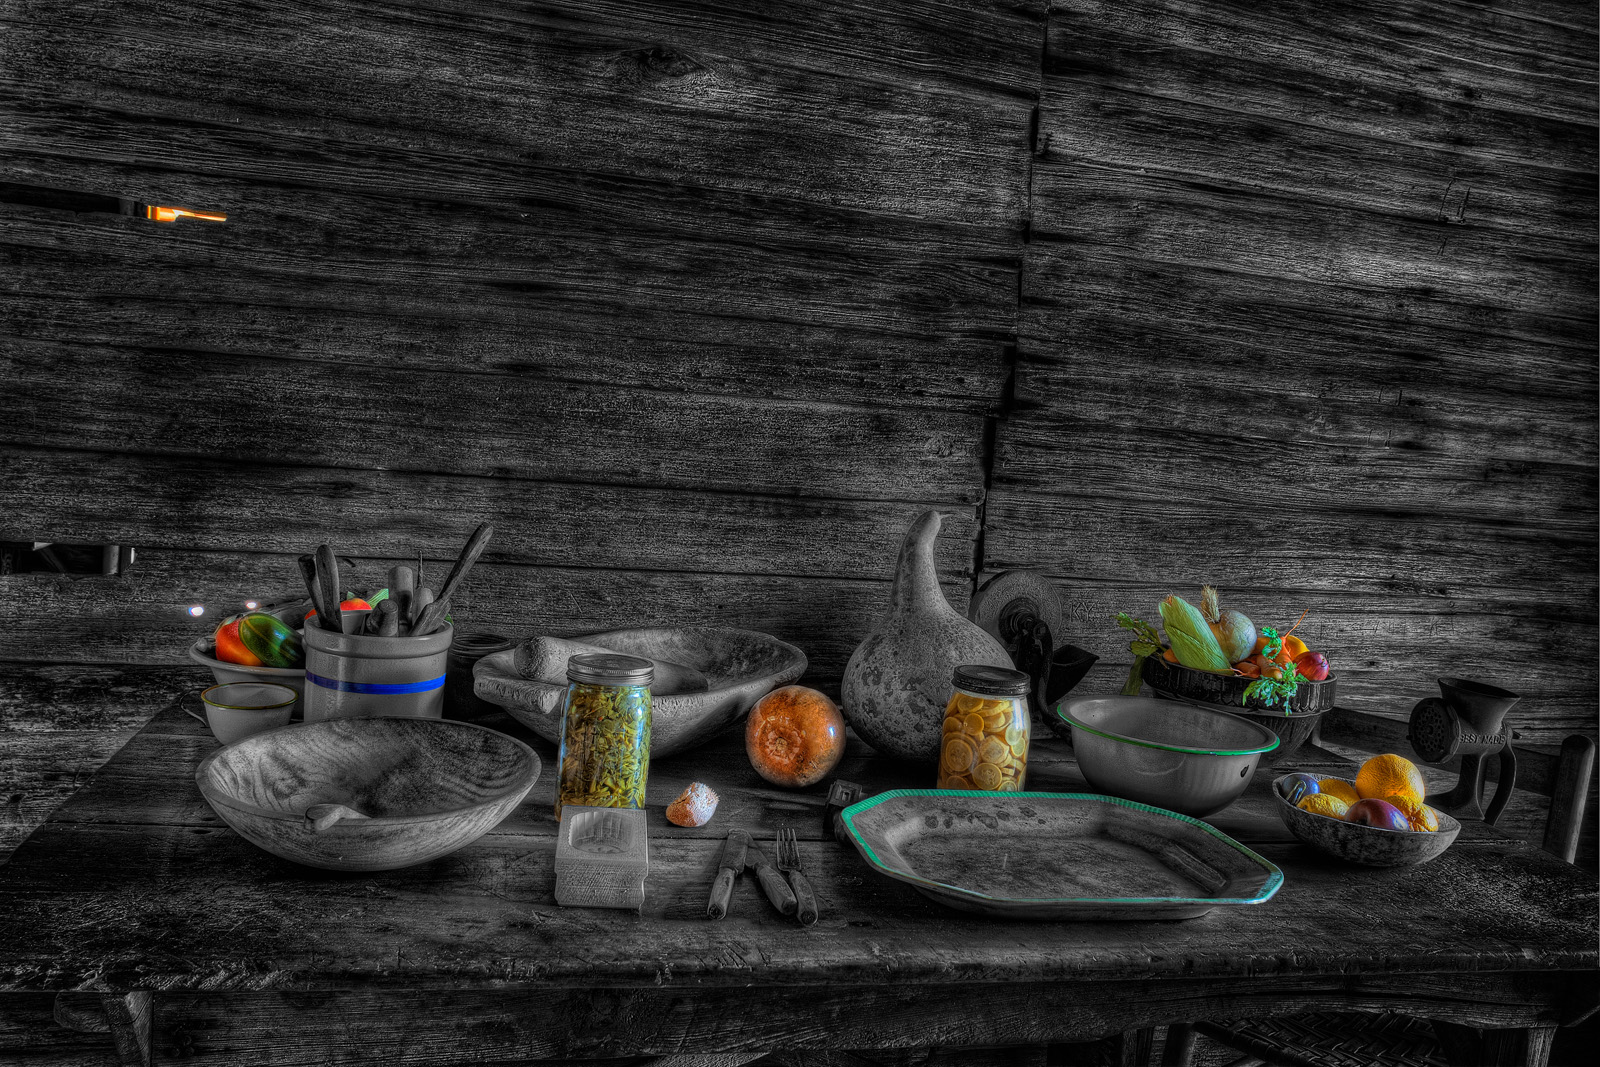 On the Table Selective Color